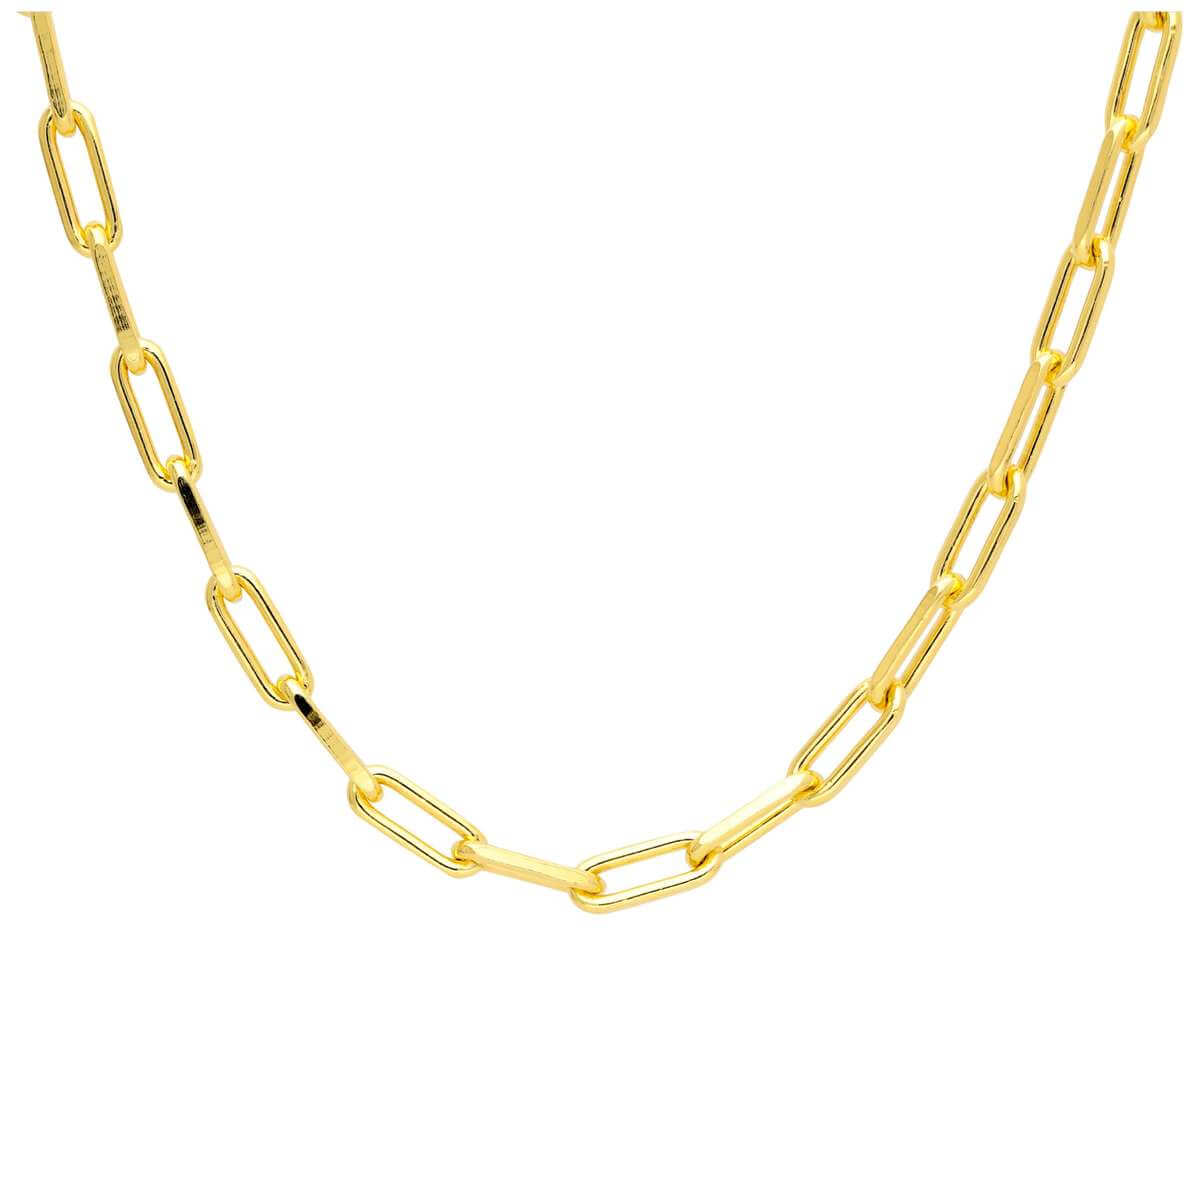 Gold Plated Sterling Silver Long Link Choker Necklace 14-16